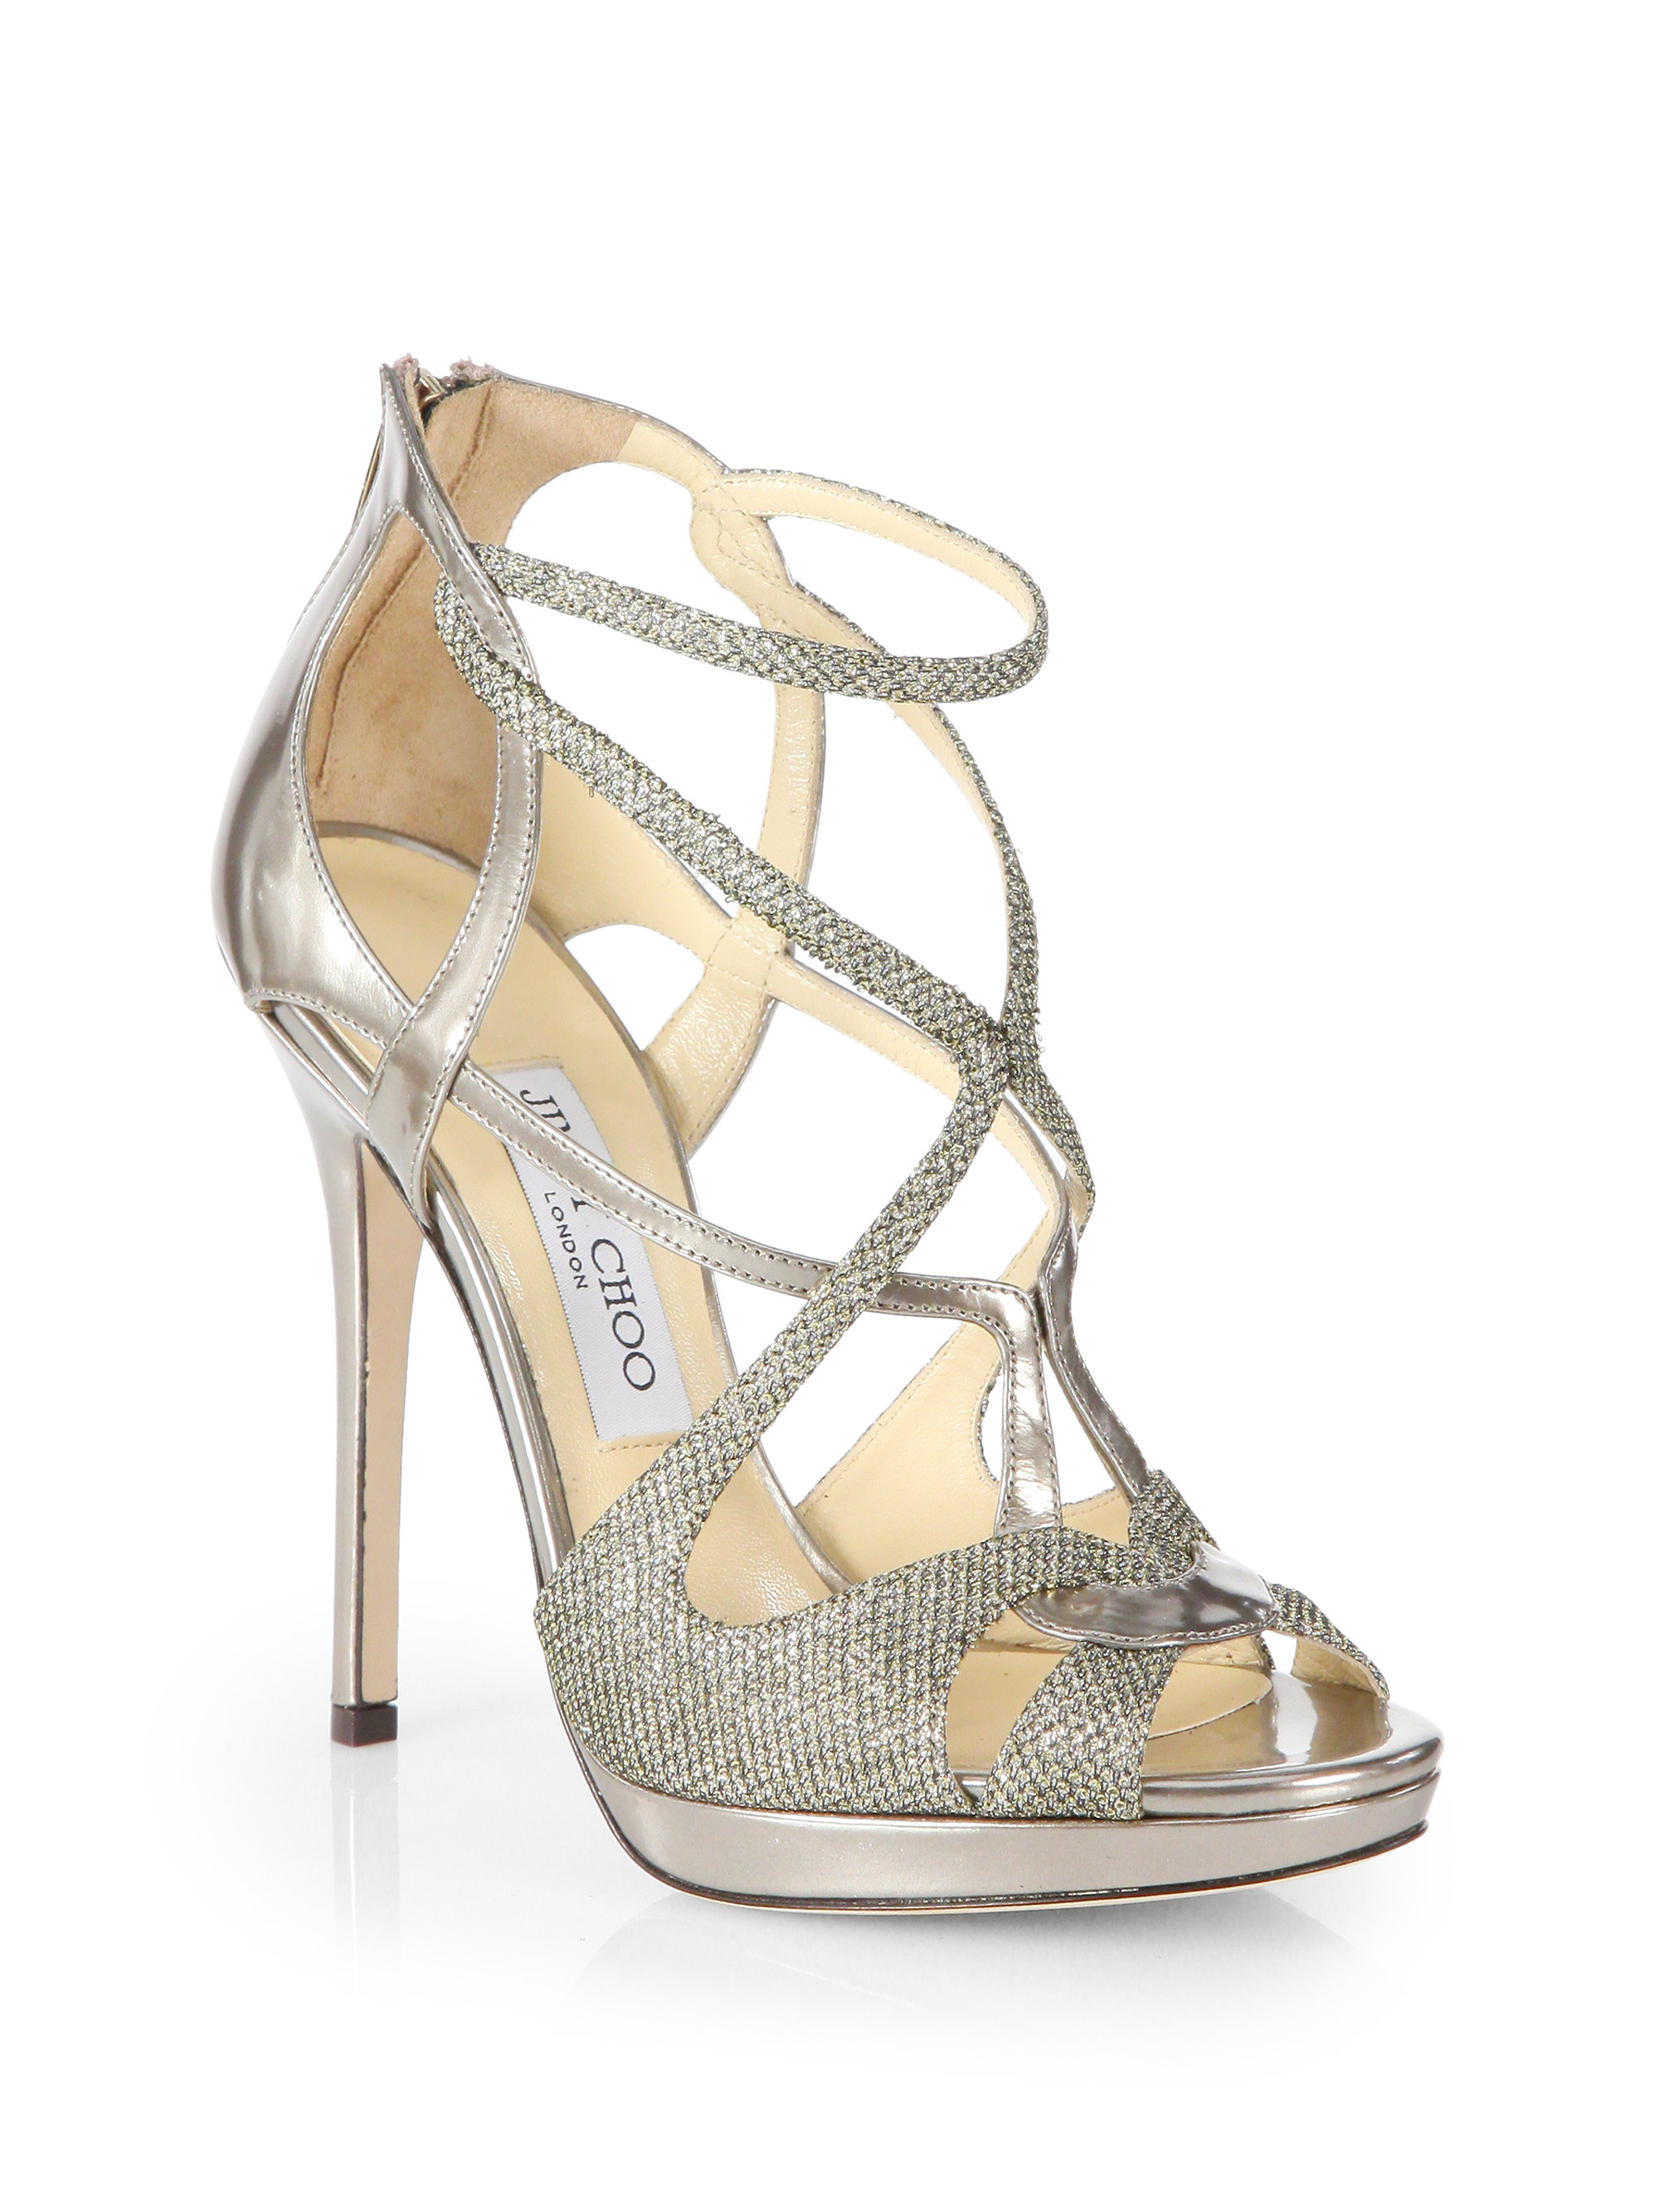 Lyst - Jimmy choo Sazerac Glitter Metallic Leather Strappy Sandals ...